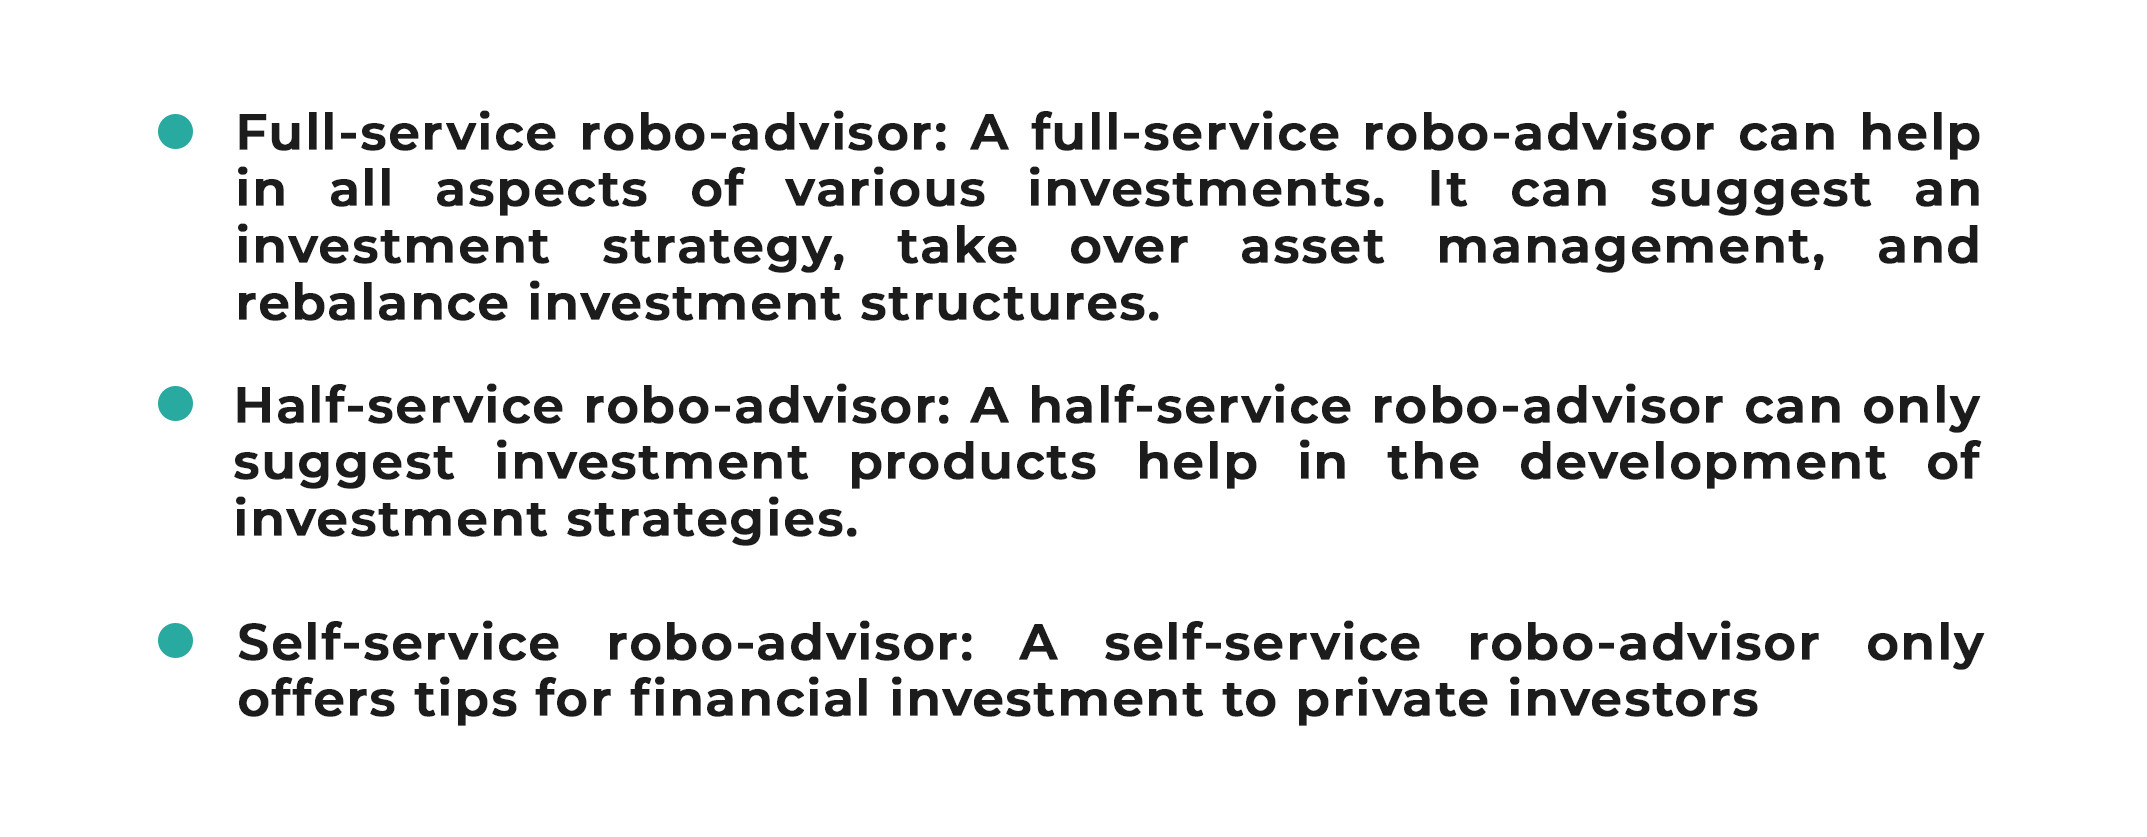 The description of three types of Robo-advisors